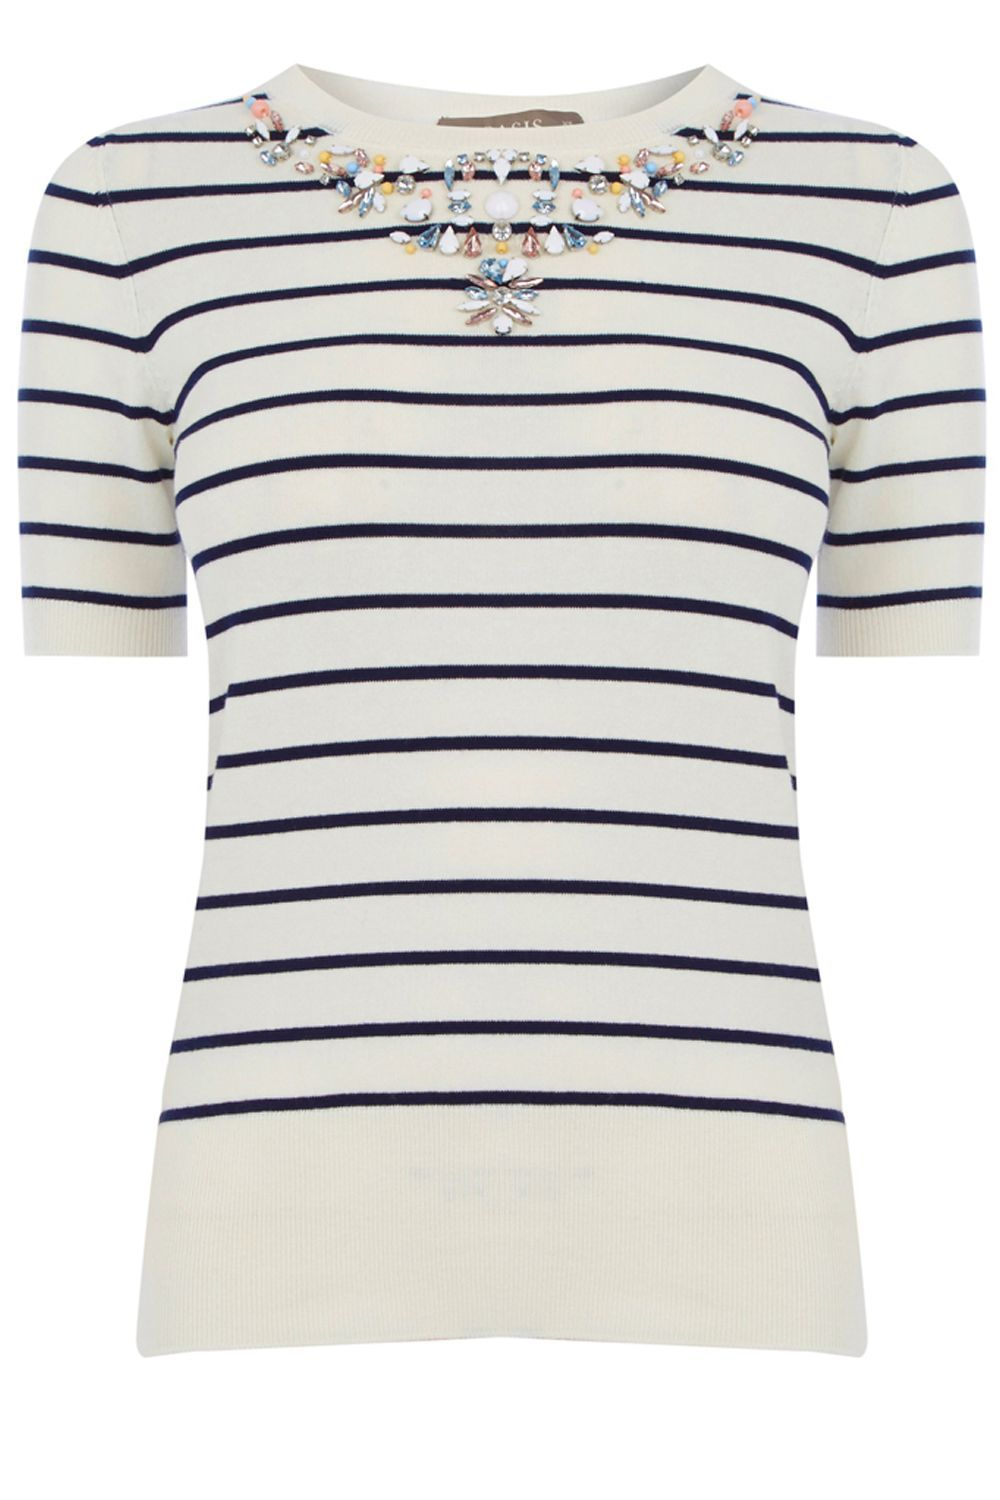 Embellished Stripe Knit, Multi Coloured - pattern: horizontal stripes; style: standard; predominant colour: ivory/cream; secondary colour: navy; occasions: casual; length: standard; fibres: cotton - mix; fit: slim fit; neckline: crew; sleeve length: short sleeve; sleeve style: standard; texture group: knits/crochet; pattern type: knitted - fine stitch; embellishment: crystals/glass; multicoloured: multicoloured; season: s/s 2016; wardrobe: highlight; embellishment location: neck